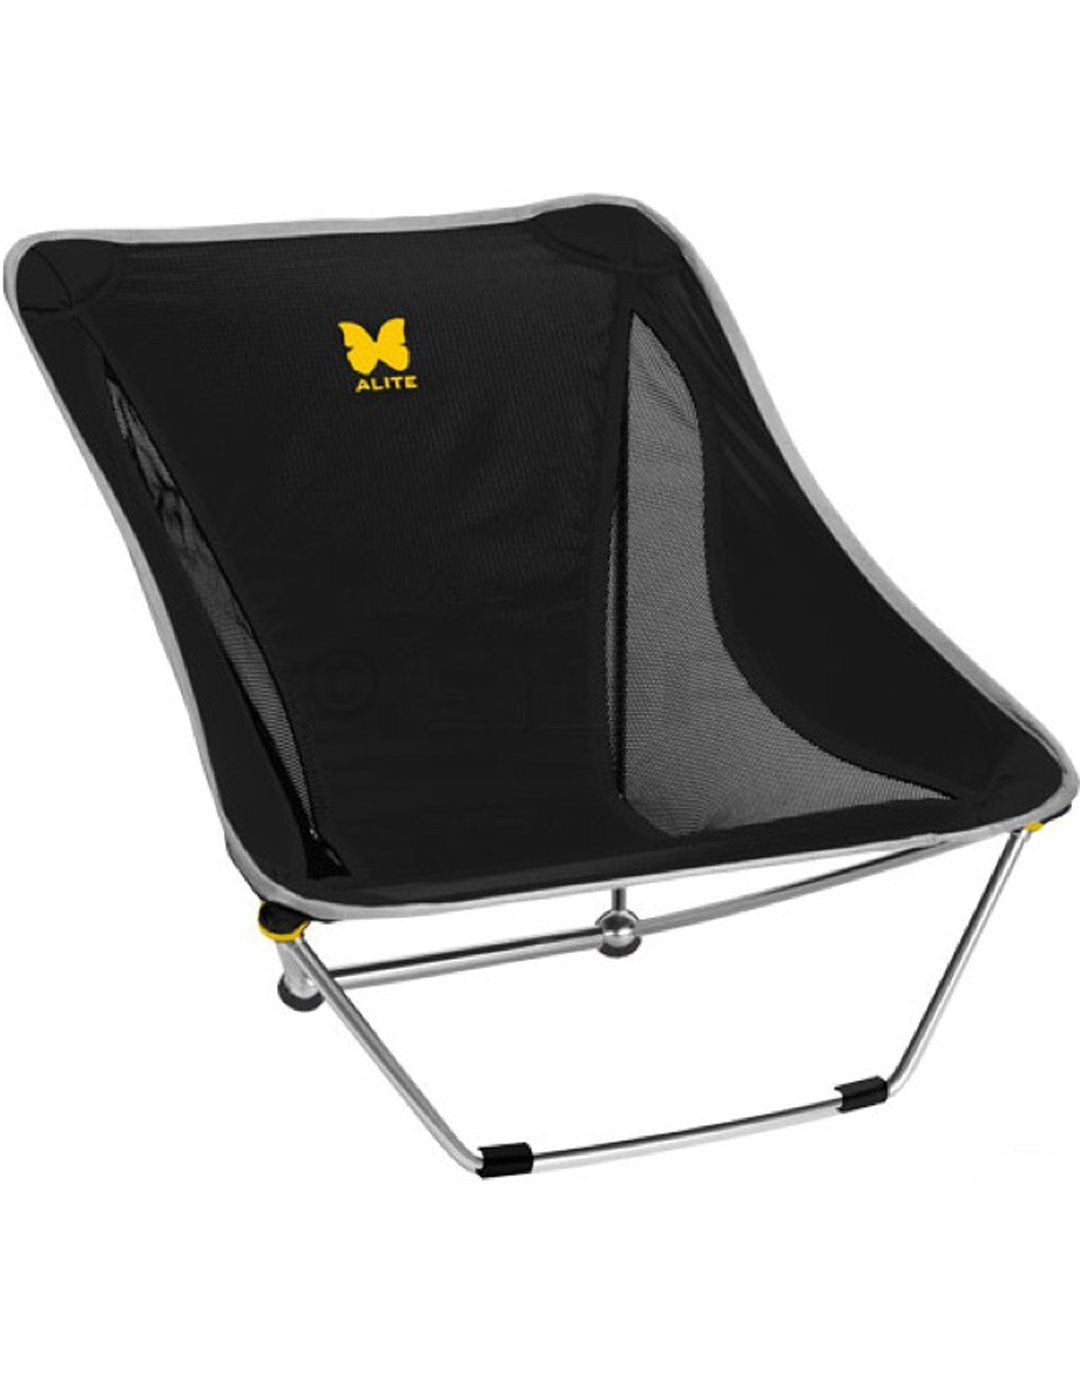 Image of Alite Mayfly Chair 2 - Black